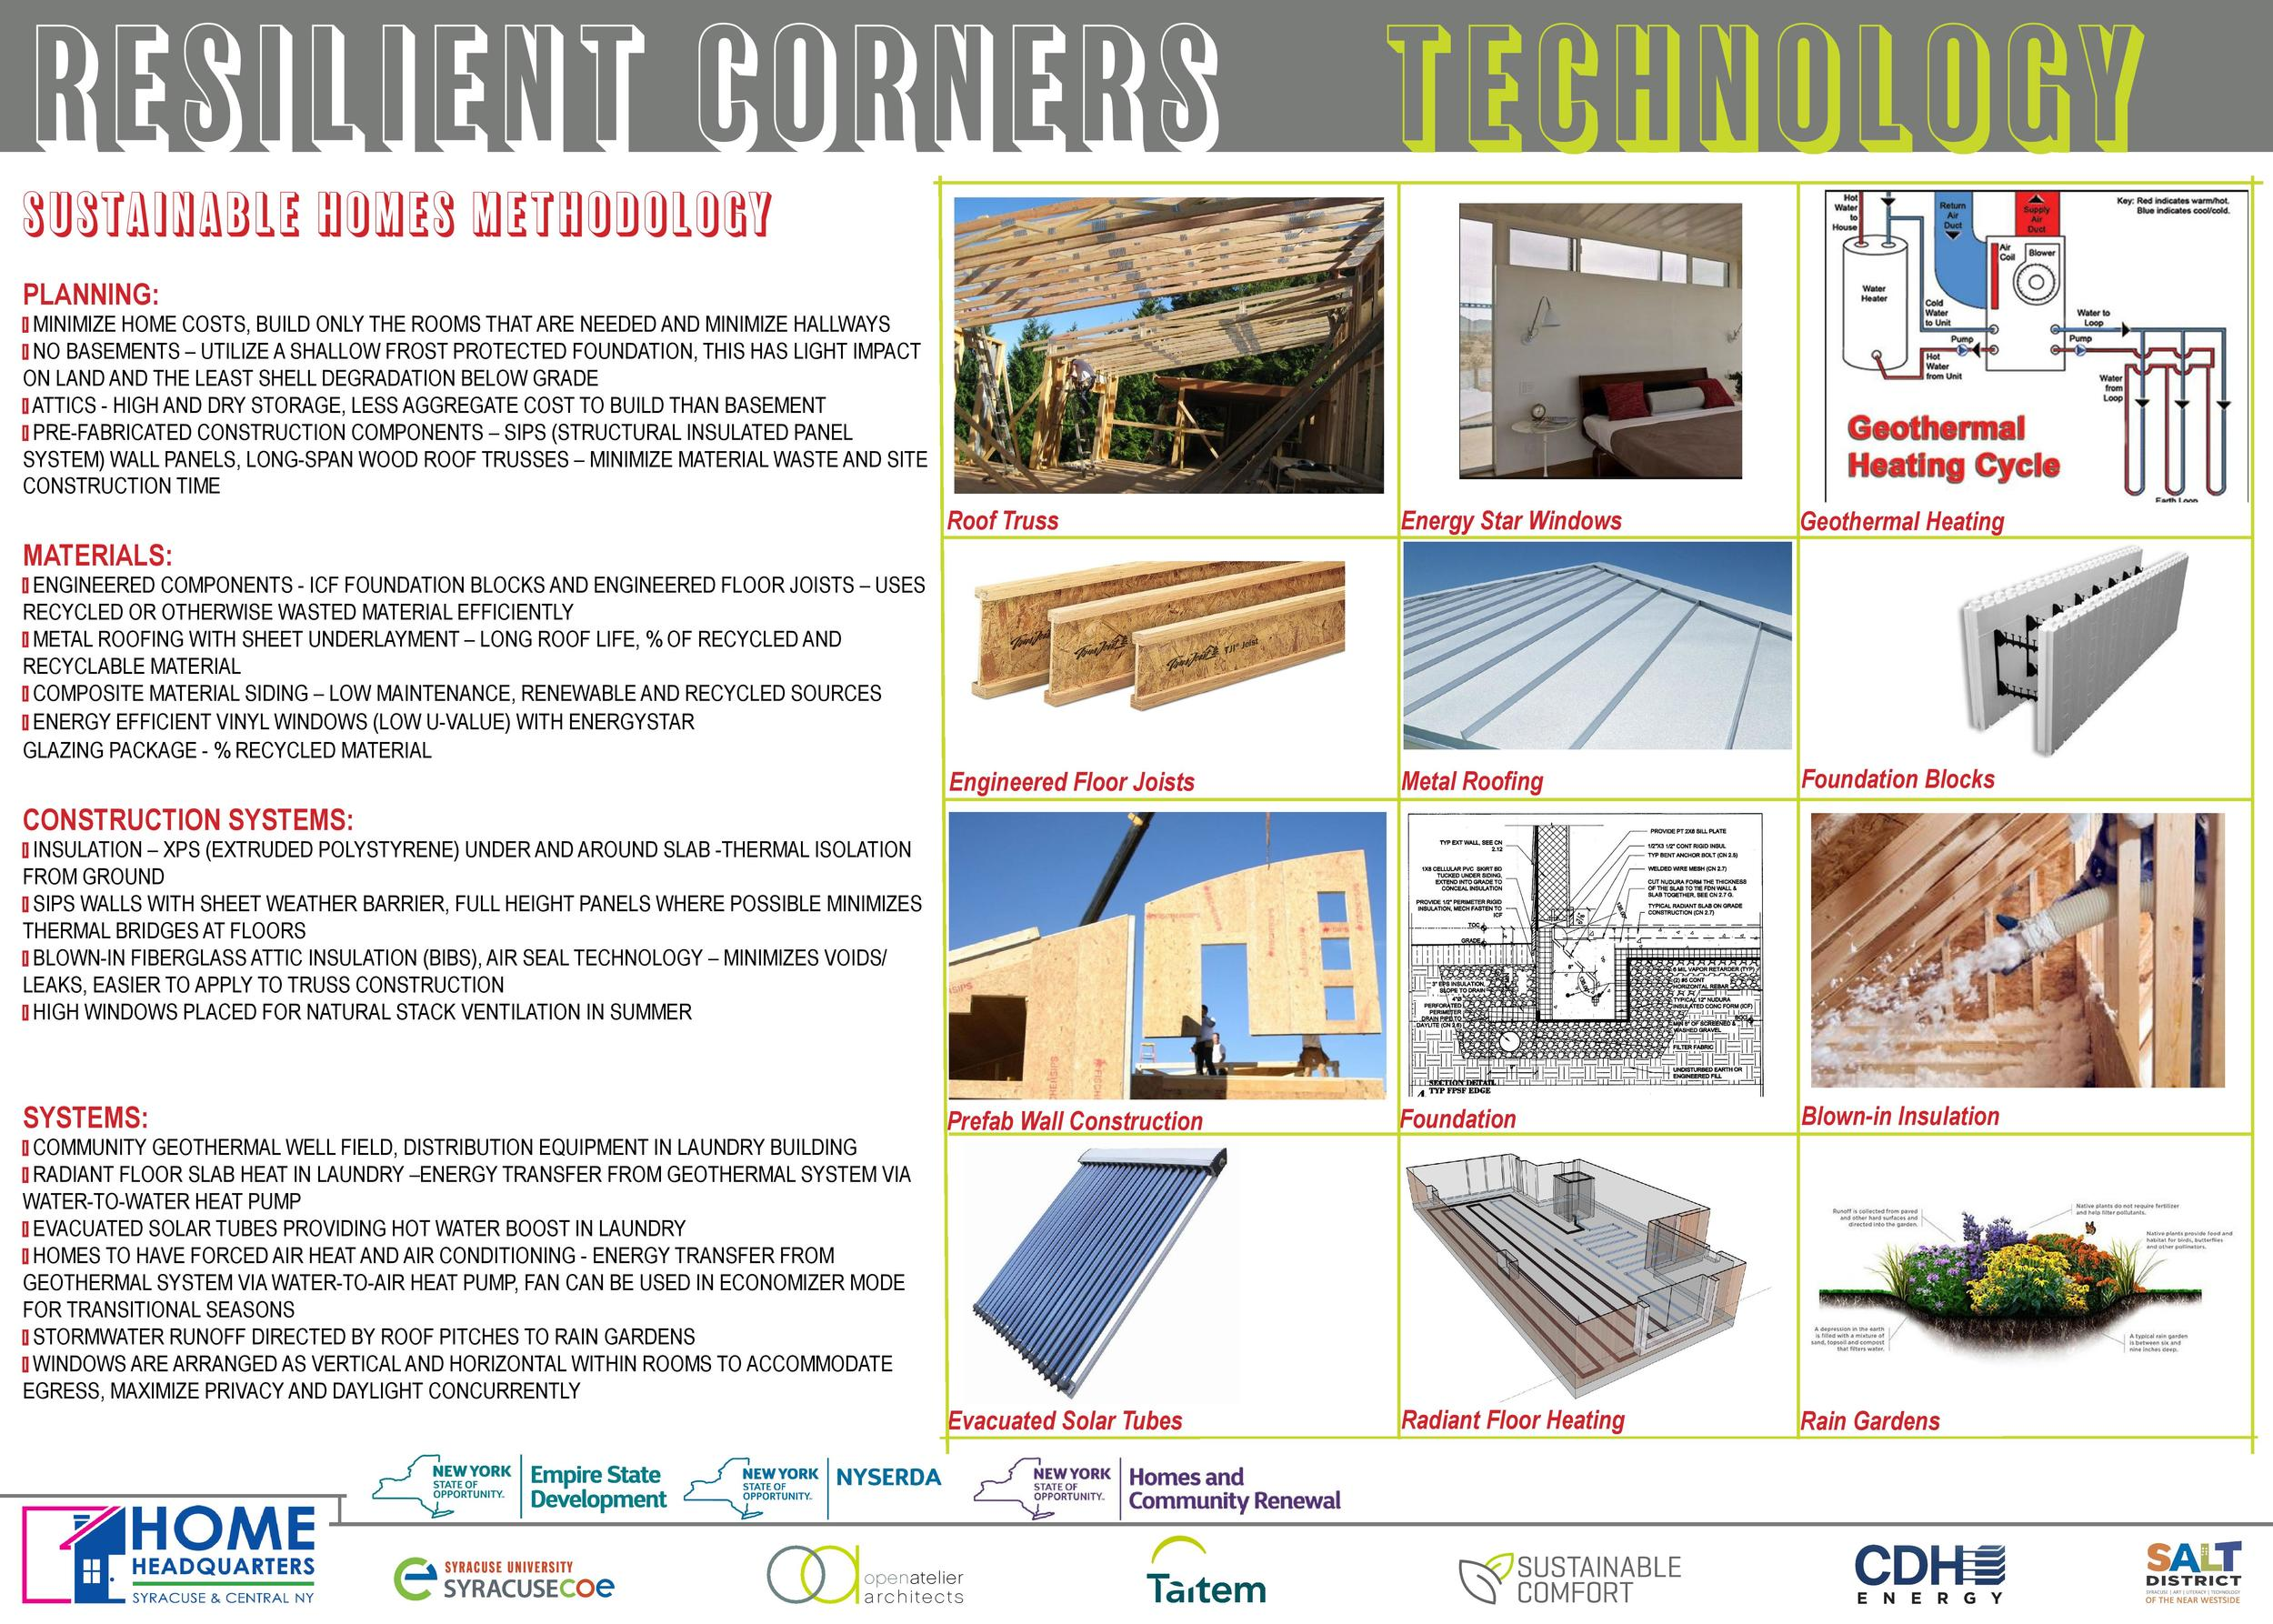 Resilient Corners Board Technology Final-page-001.jpg